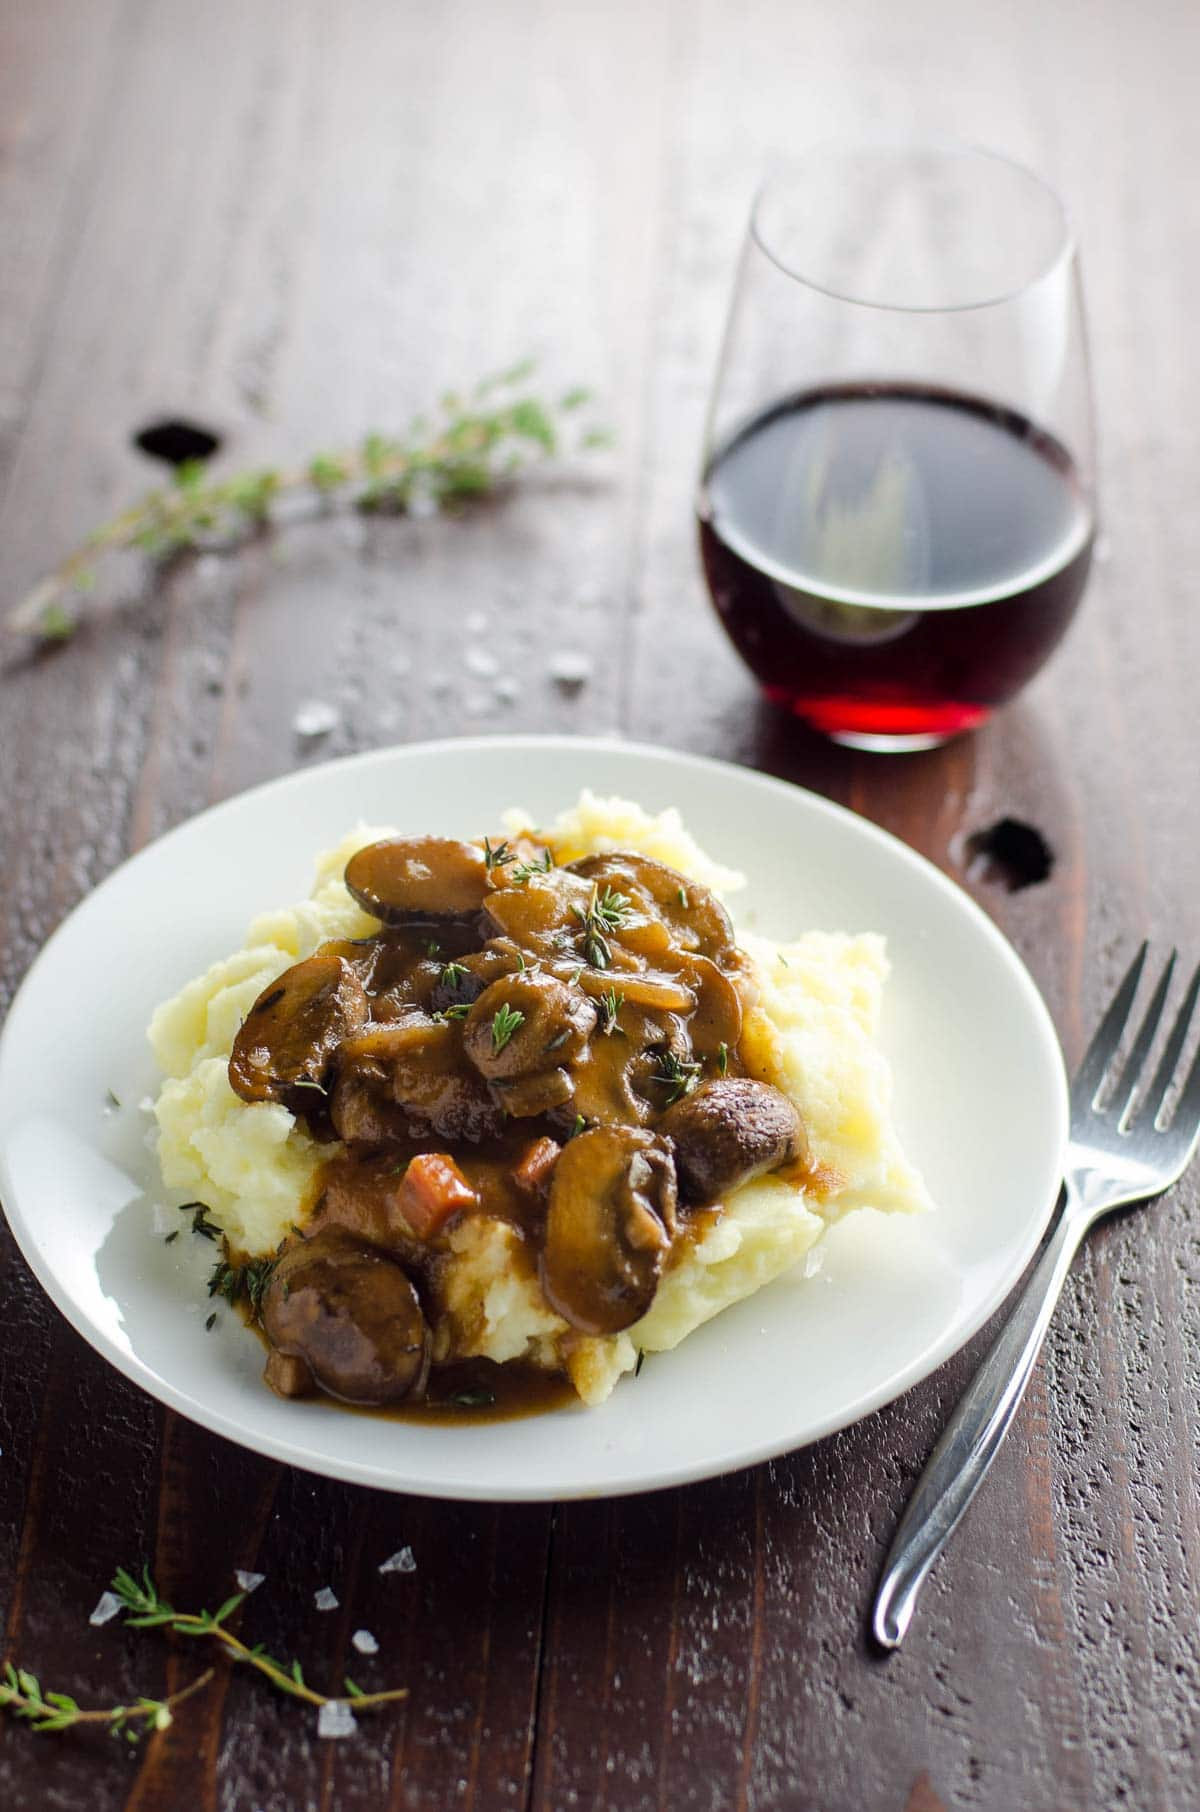 mushroom bourguignon (vegan option) on a plate with mashed potatoes and a glass of red wine